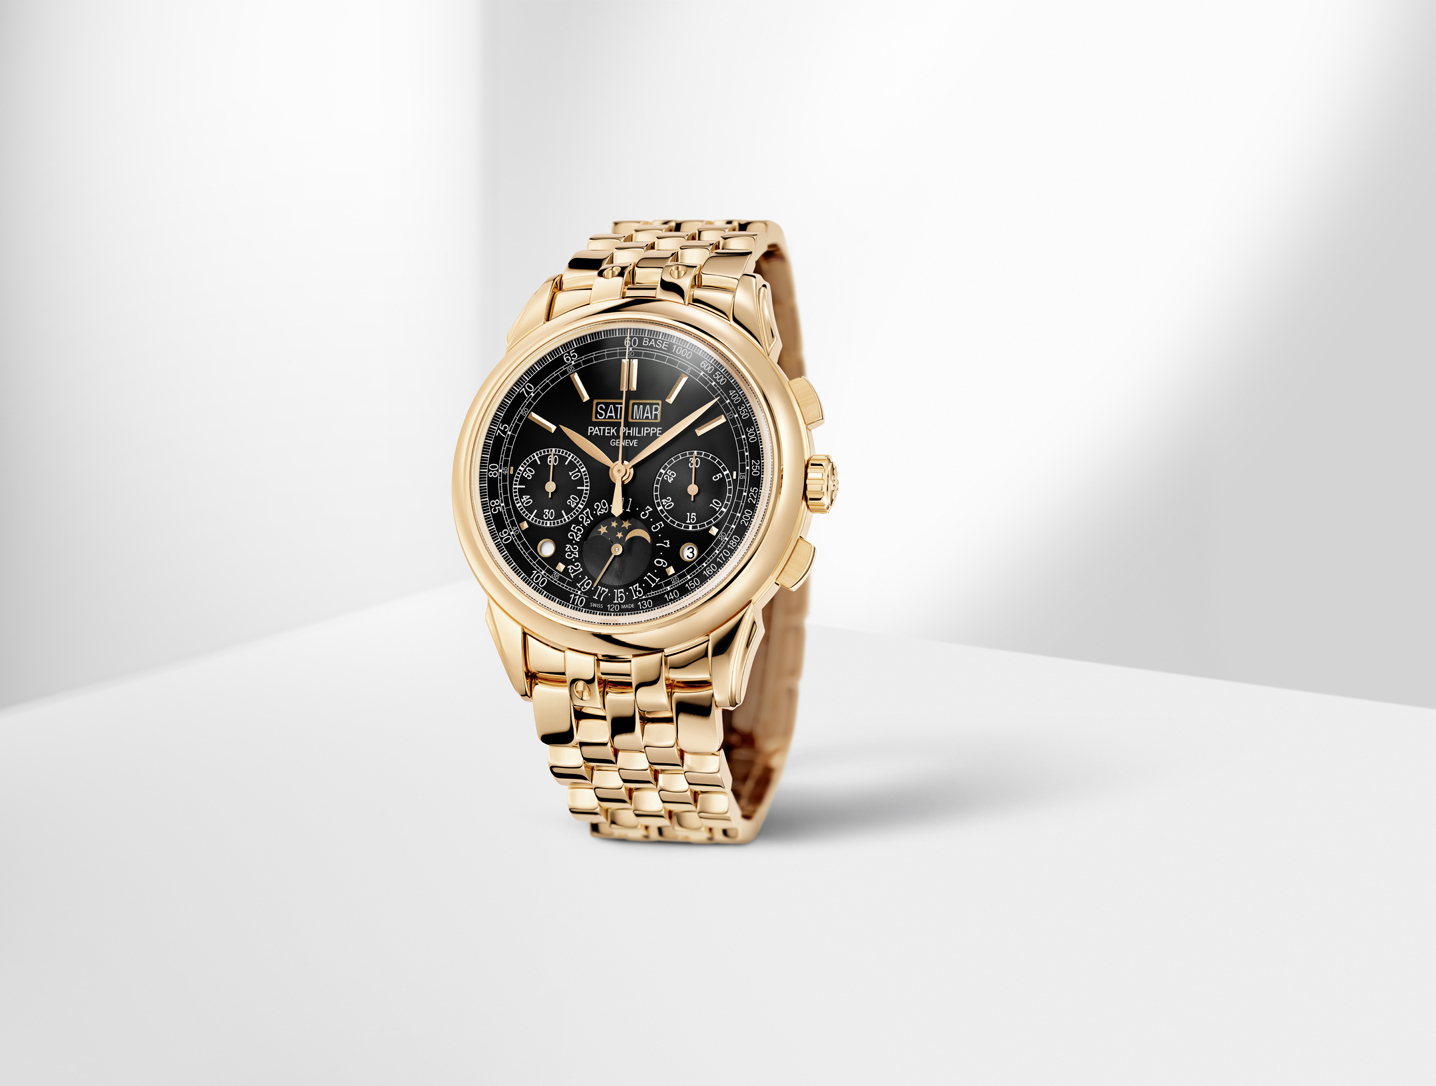 Grand Complication - 5270/1R-001